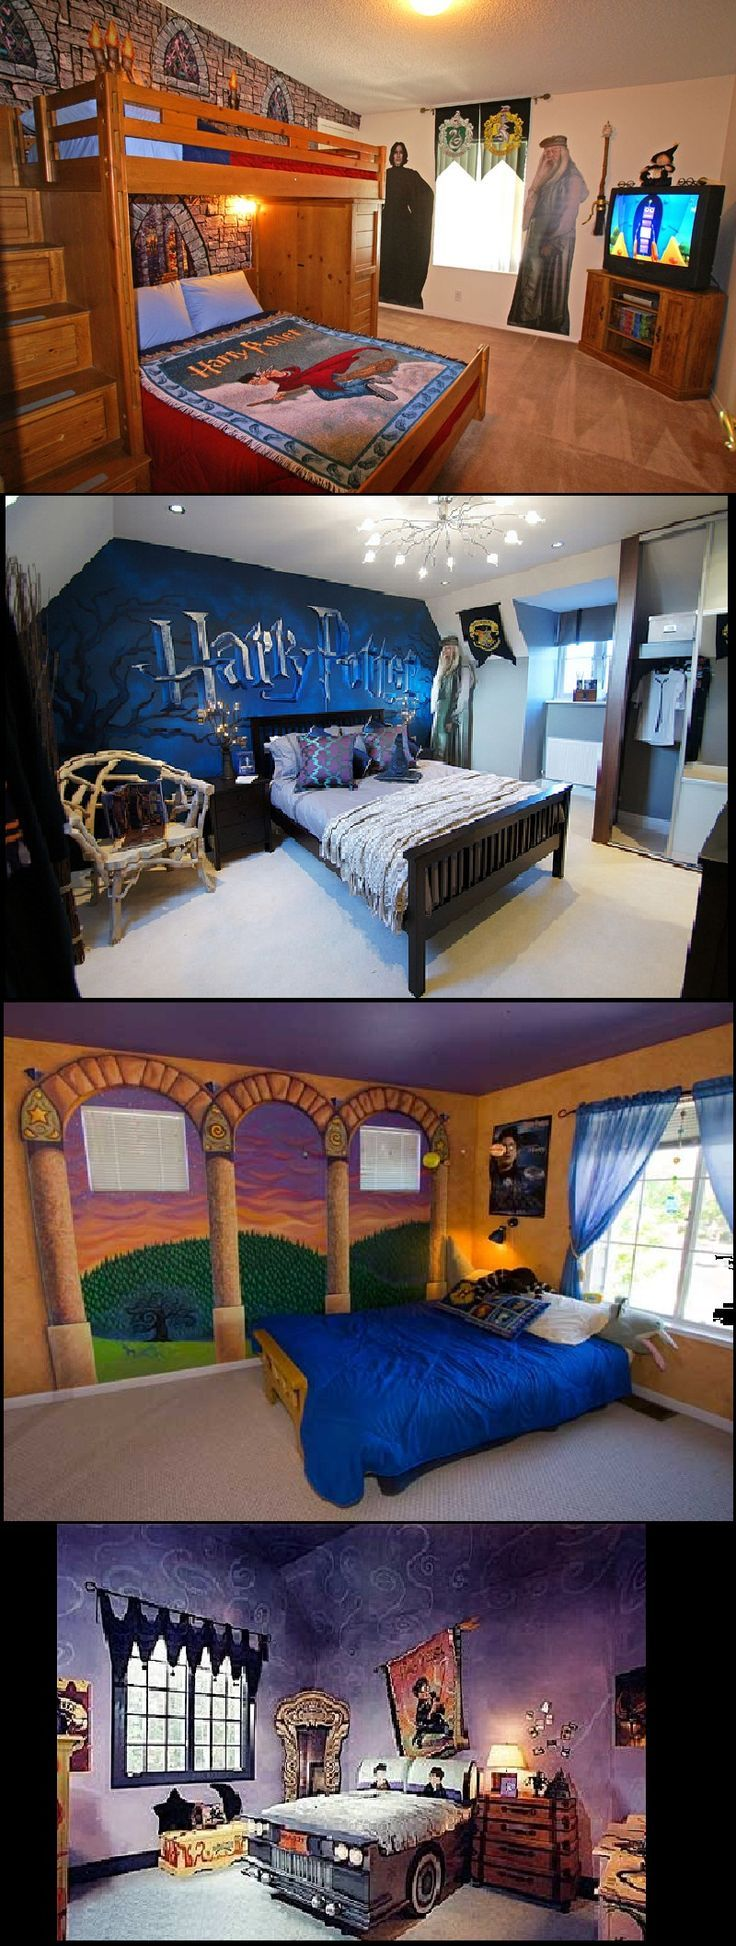 Decorating Theme Bedrooms: Ideas For A Harry Potter Theme Room